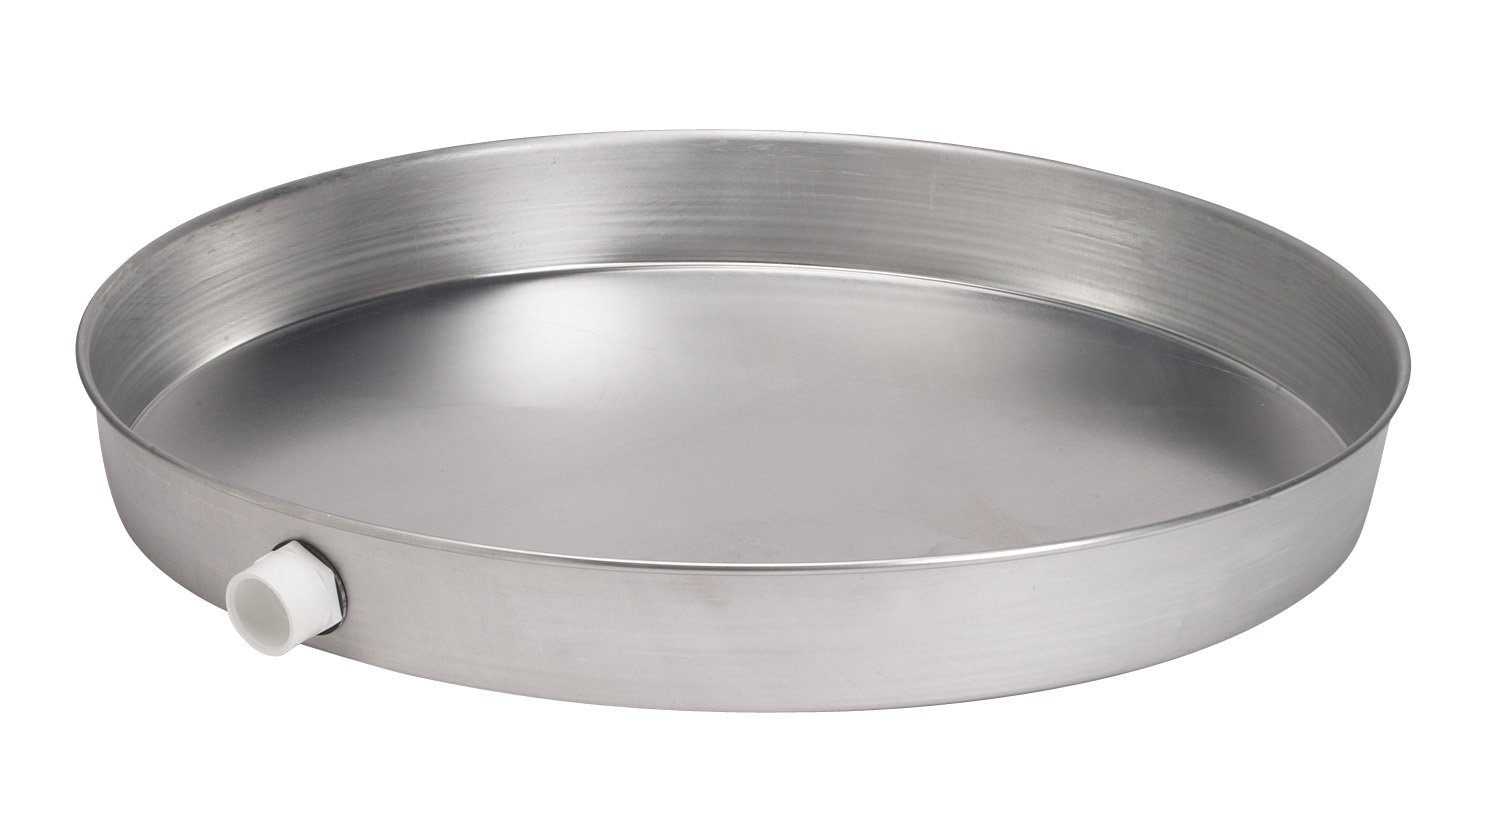 Oatey 34083 Aluminum Pan with 1-1/2-Inch PVC Fitting, Pan without Pre-Drilled Hole, 24-Inch